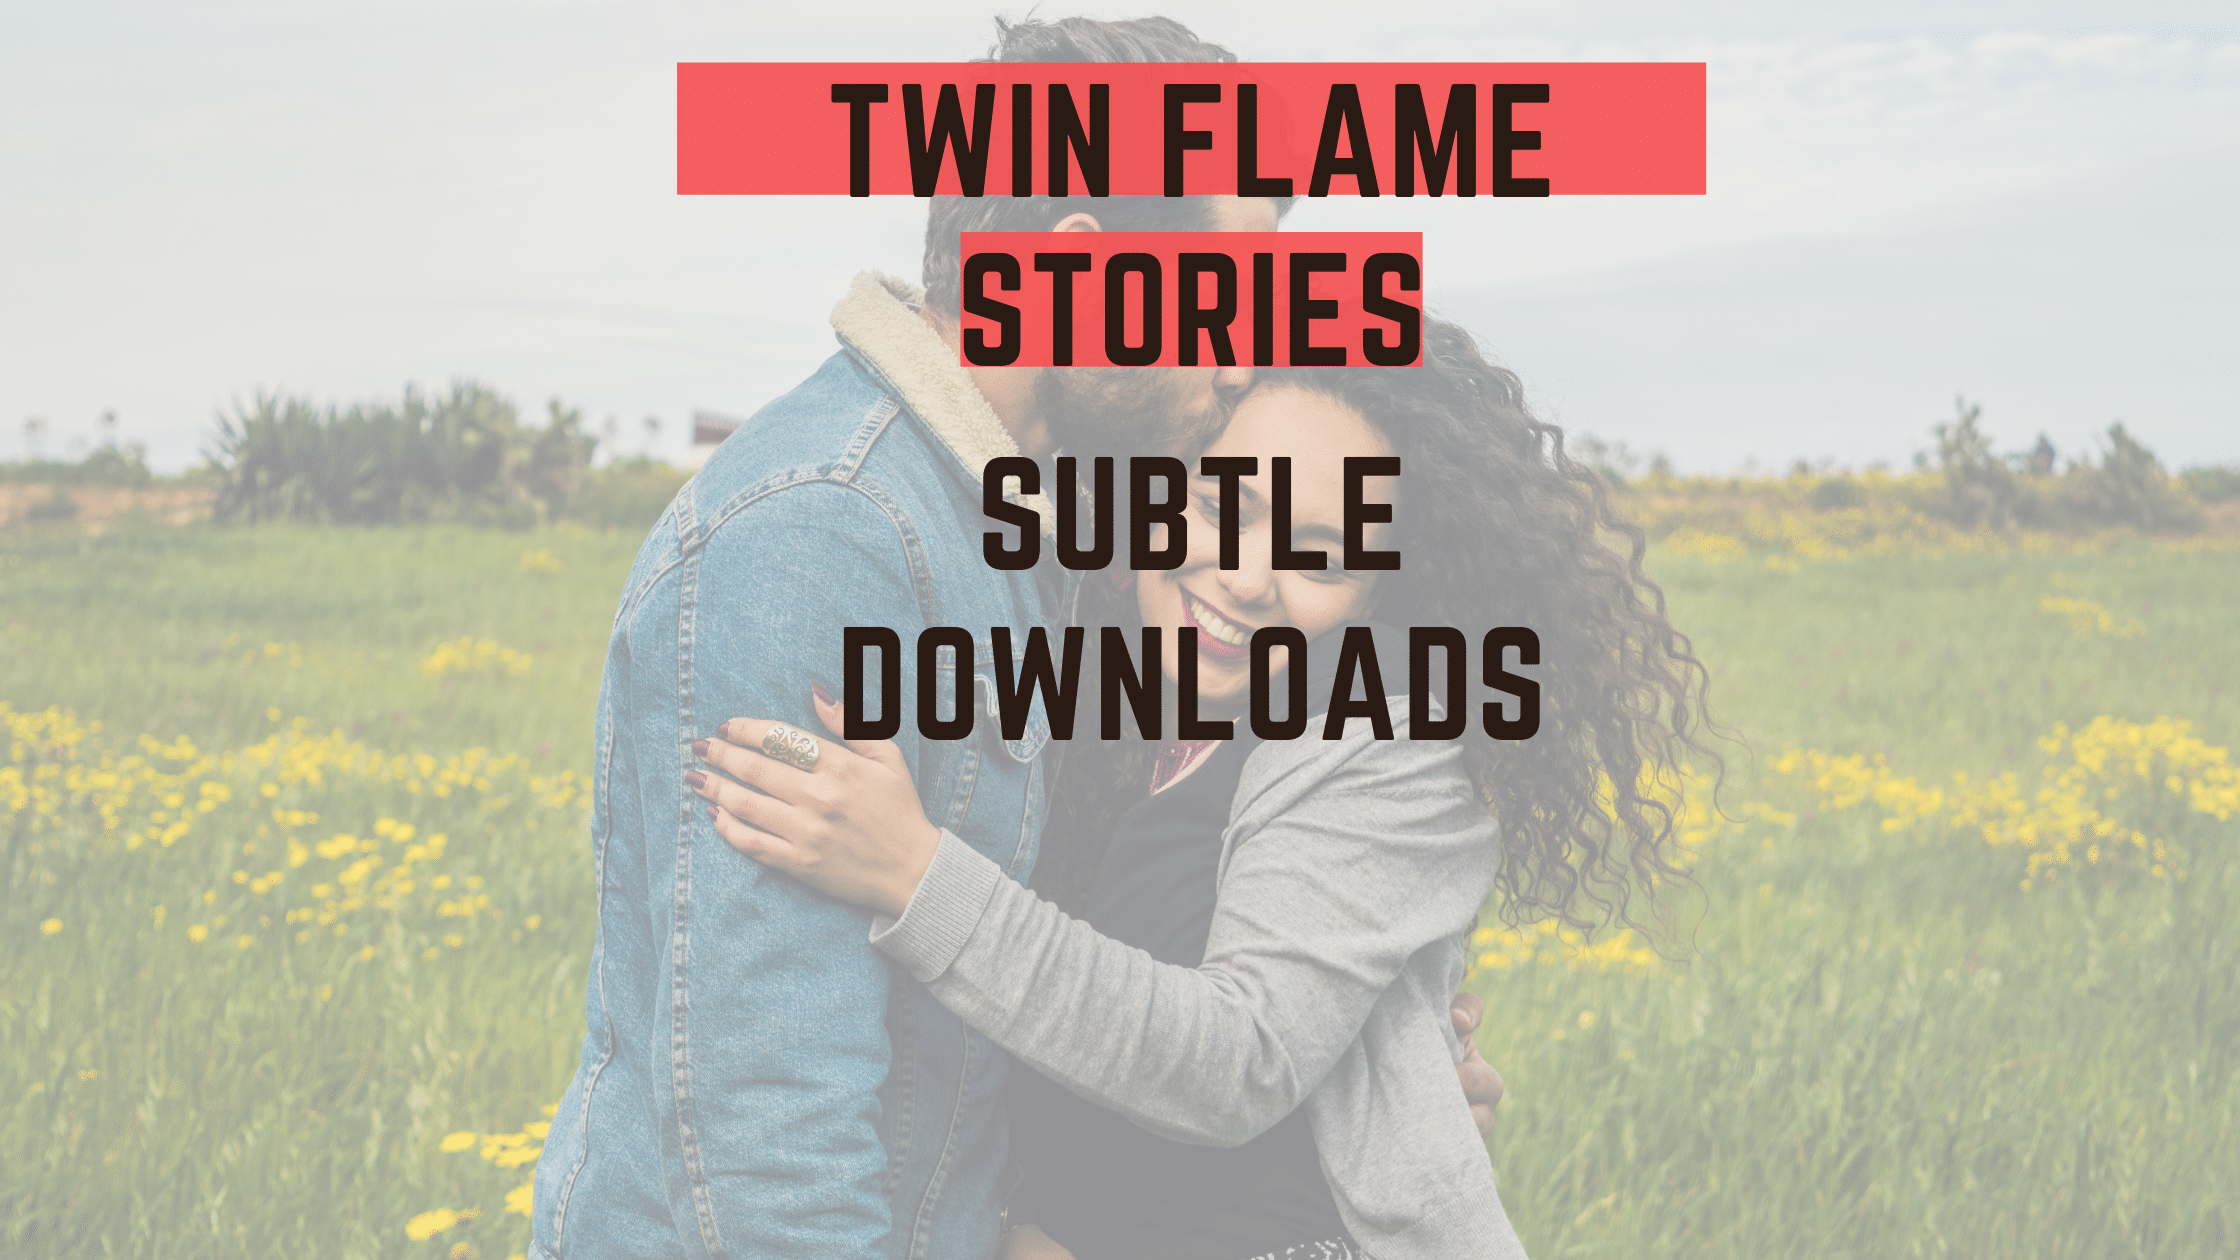 Subtle Downloads twin flame story